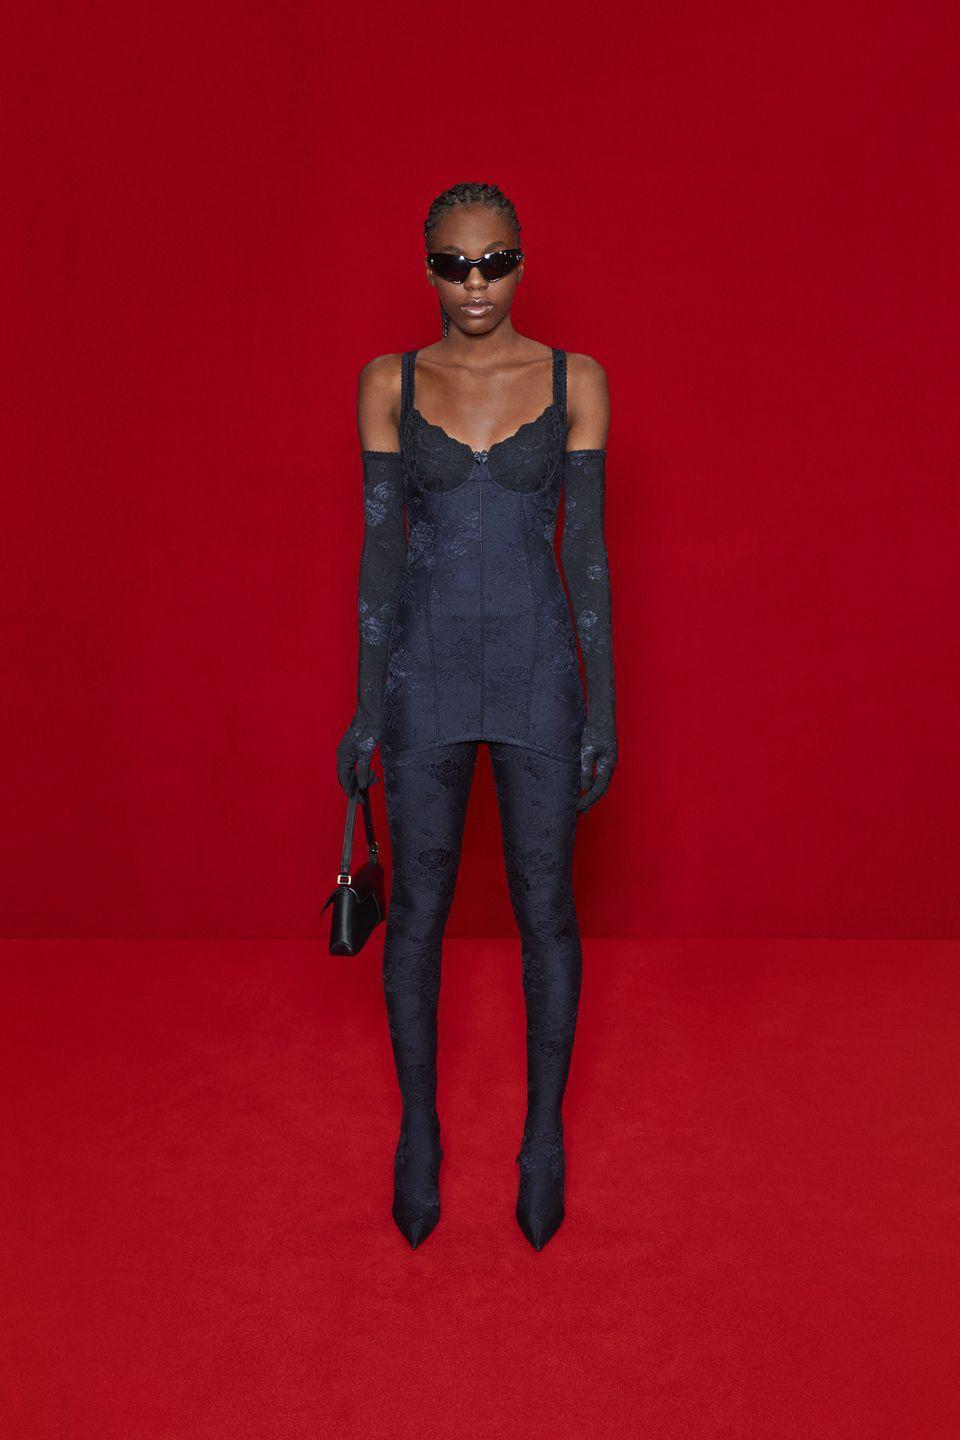 """<p>When it came to thinking outside the box for a catwalk show, Balenciaga certainly was ahead of the rest this season. The house surprised guests with a special 10-minute episode of The Simpsons which saw Marge, Homer and the rest travel to Paris Fashion Week to walk in the Balenciaga show. The spectacle saw Balenciaga and Demna Gvasalia poke fun at itself and the fashion industry as a whole – and was an undisputed success on social media.</p><p><a href=""""https://www.balenciaga.com/en-gb/the-simpsons-episode"""" rel=""""nofollow noopener"""" target=""""_blank"""" data-ylk=""""slk:You can watch the episode here."""" class=""""link rapid-noclick-resp"""">You can watch the episode here.</a></p>"""